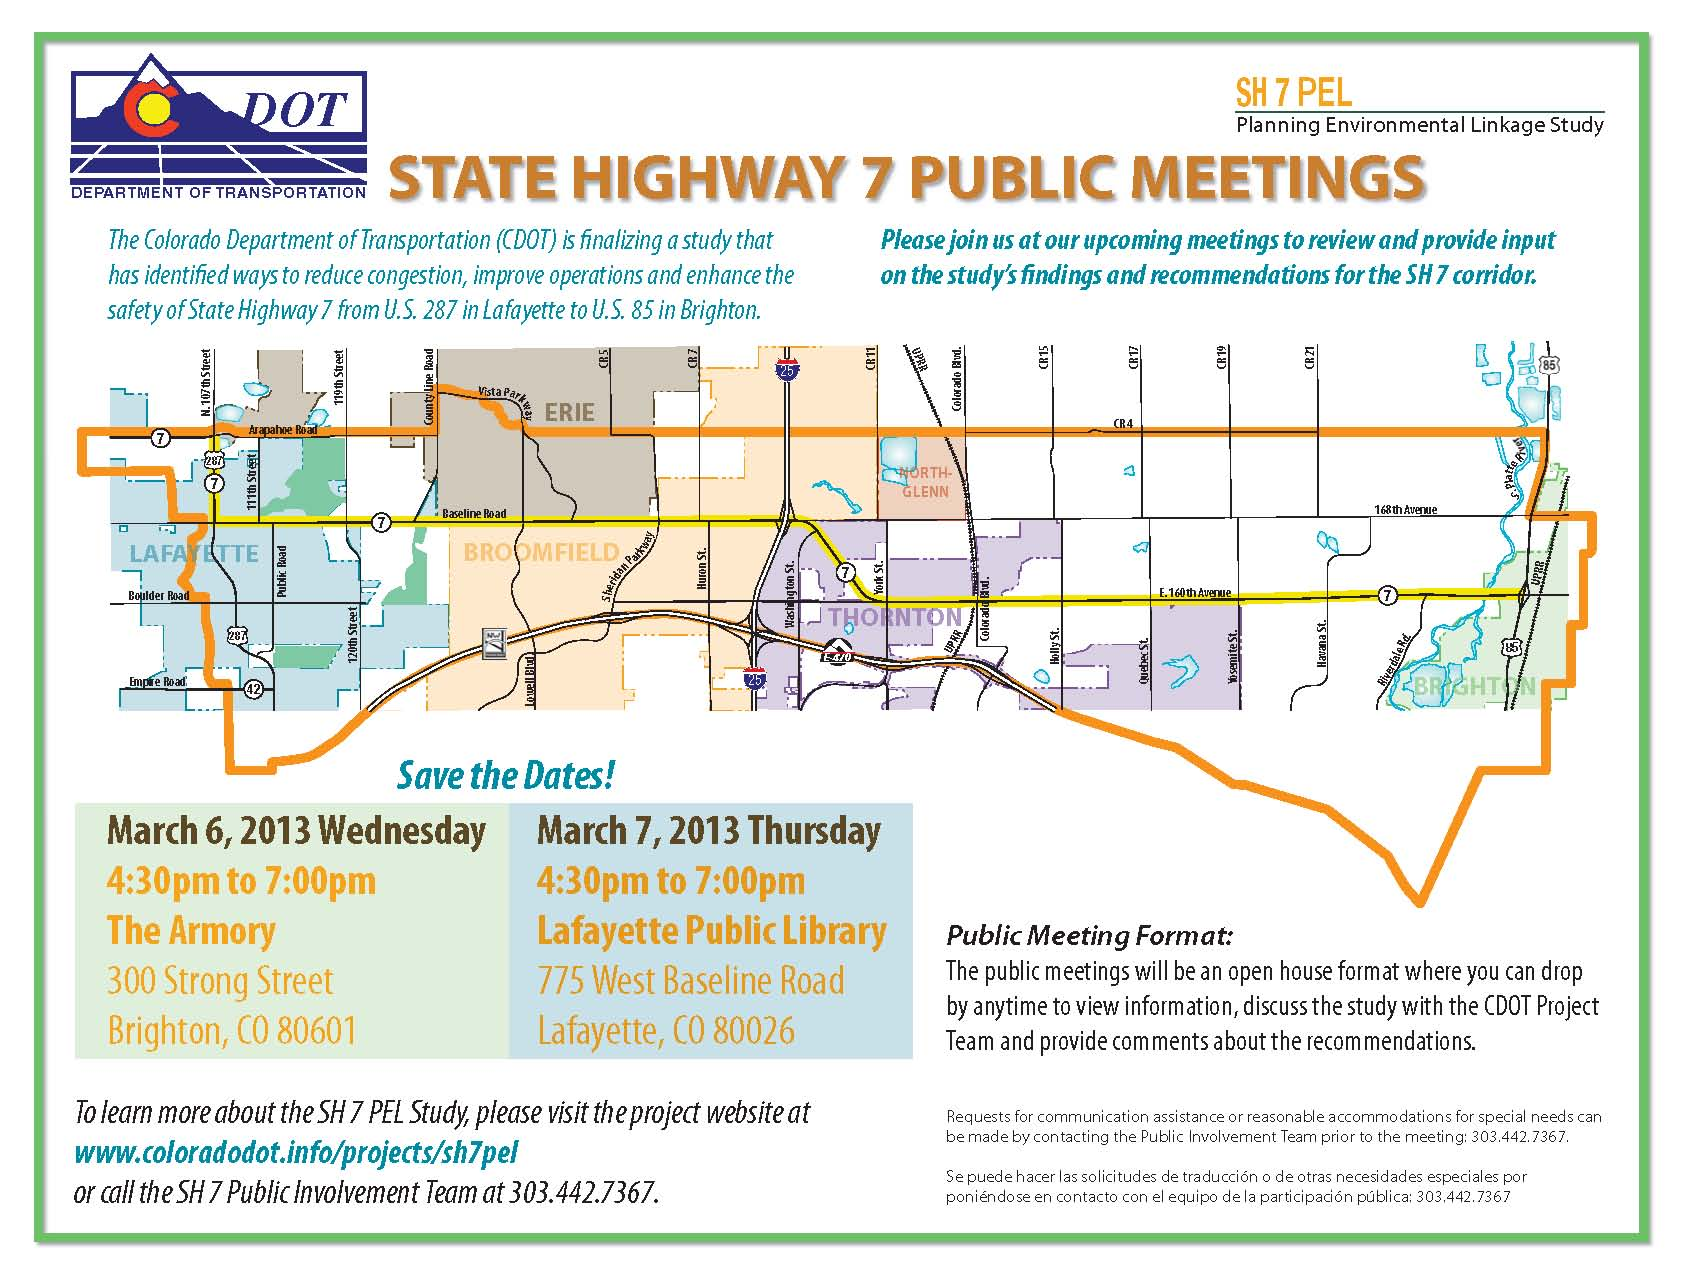 State Highway 7 March 2013 Meeting